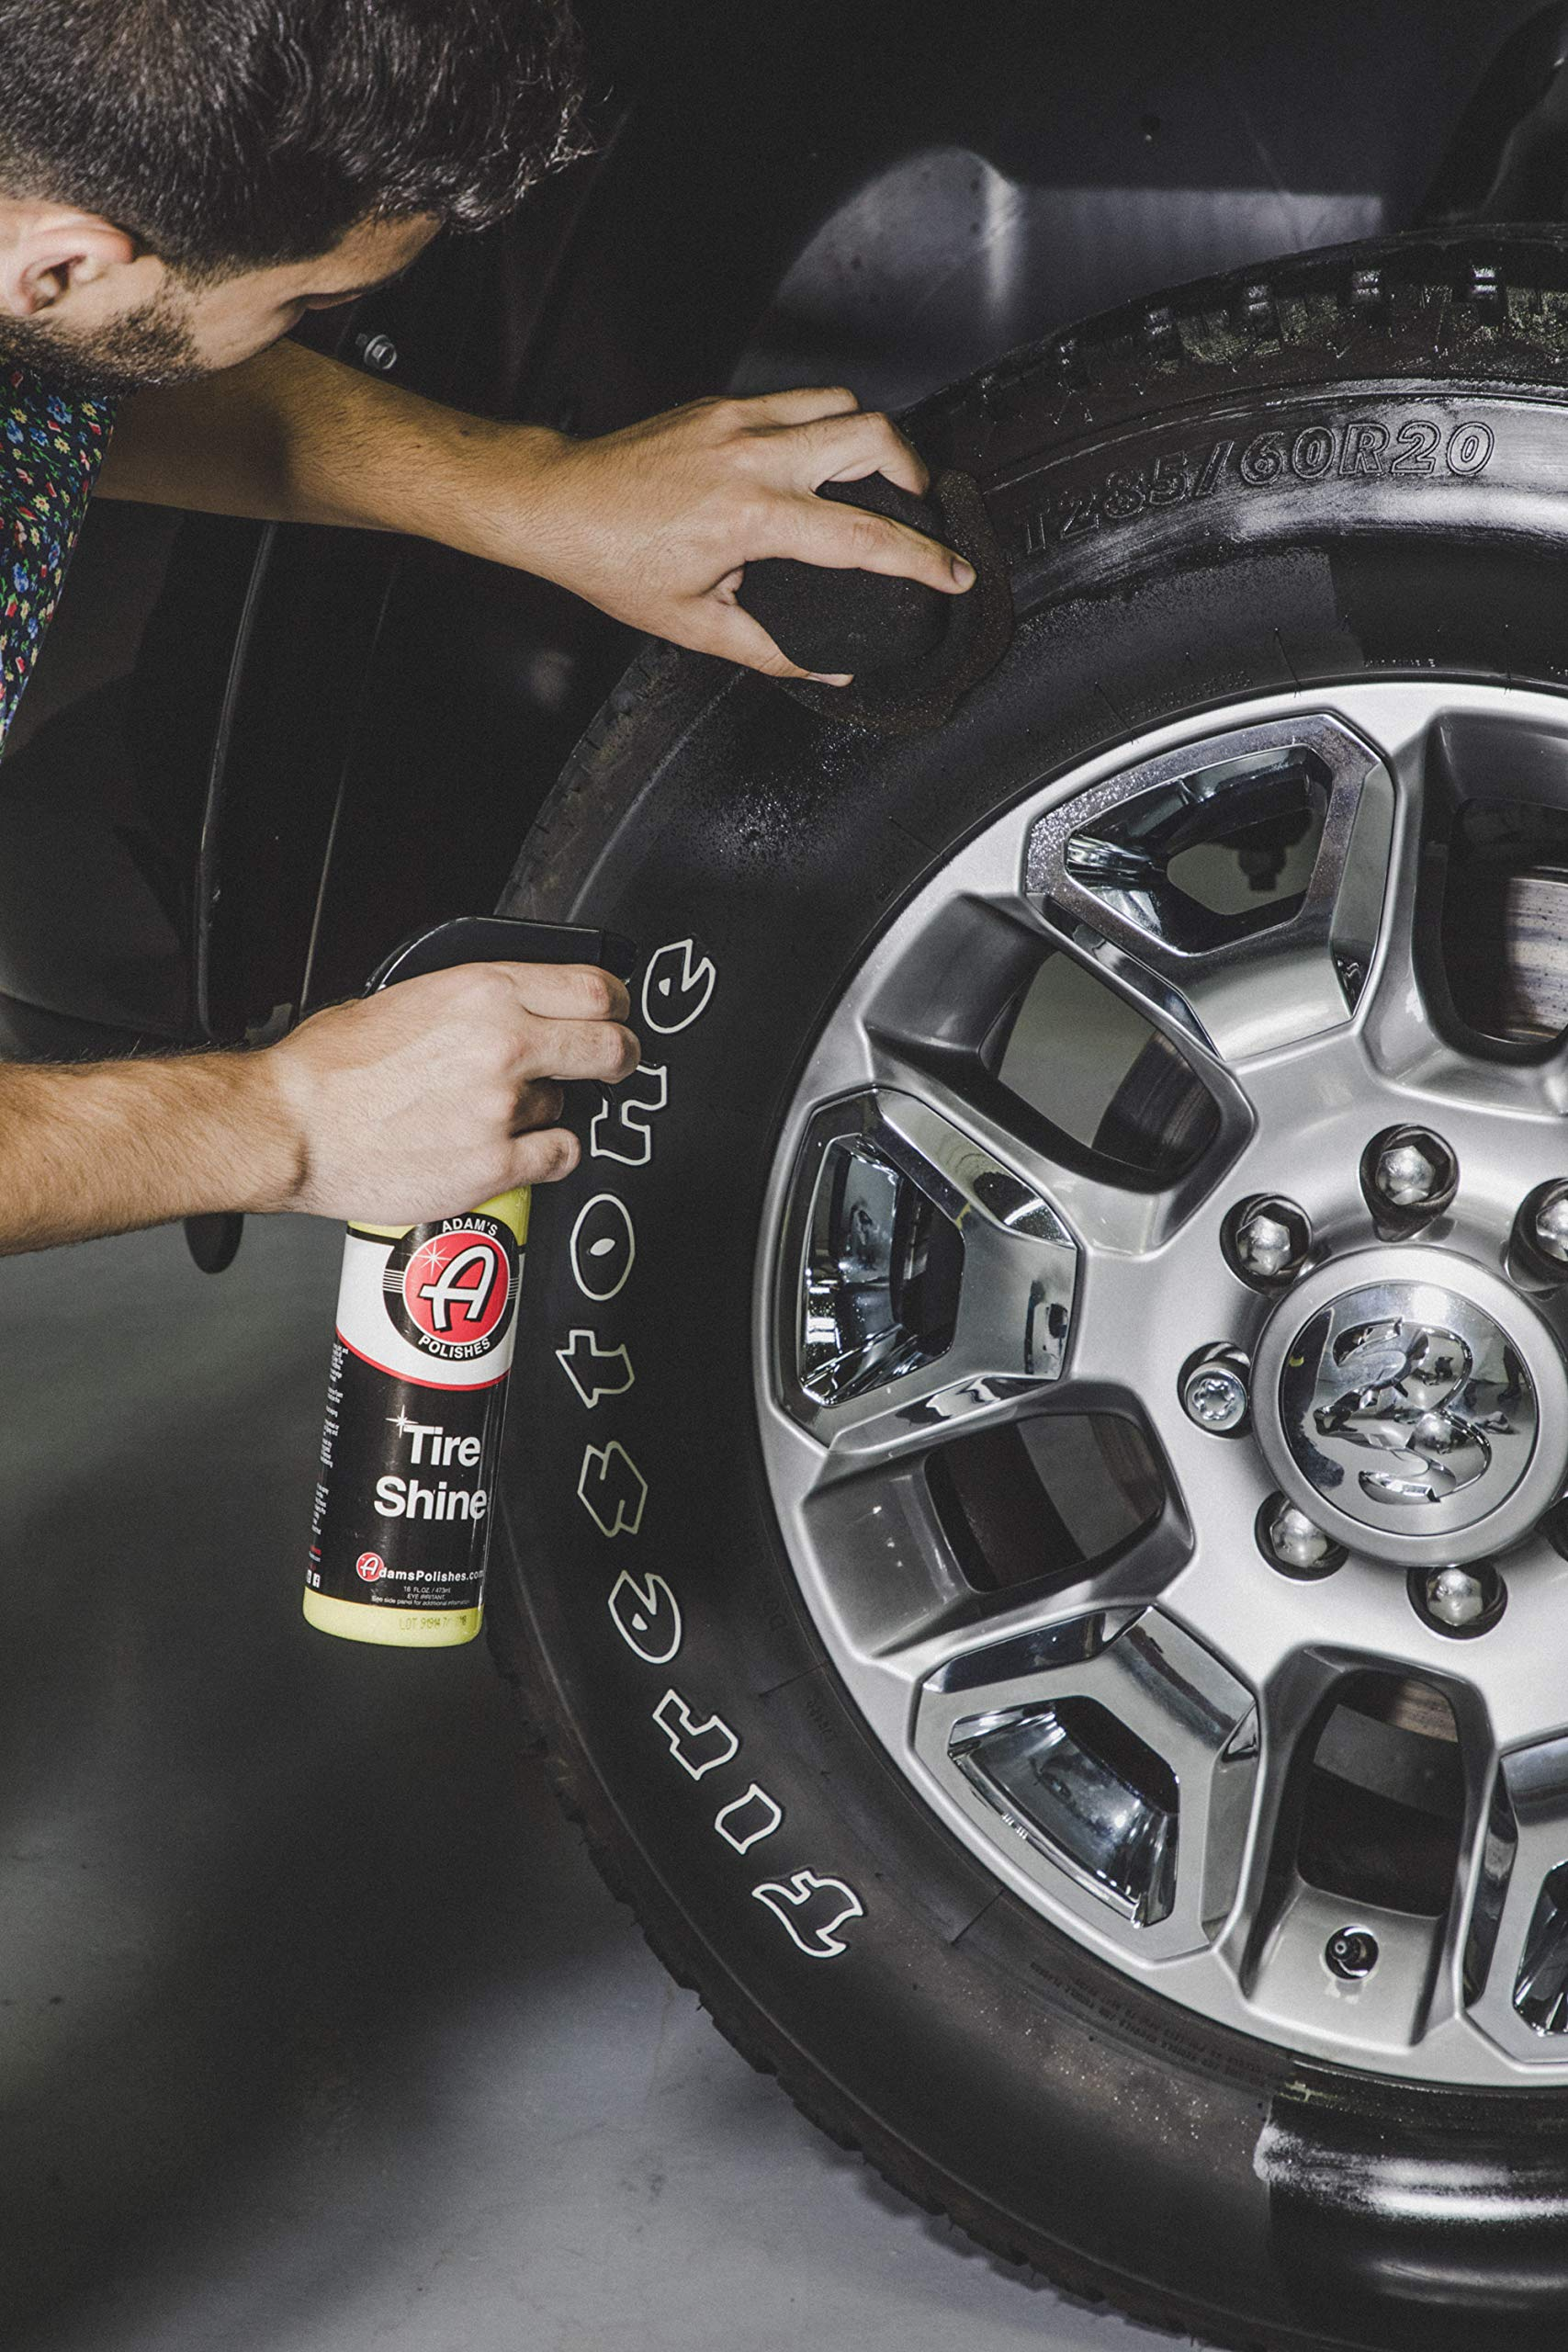 Adam's Hex-Grip Pro Tire Dressing Applicator - Ergonomic Design Makes Detailing Your Tires Easier - Mess Free Application Tire Dressings - Durable, Washable, and Reusable